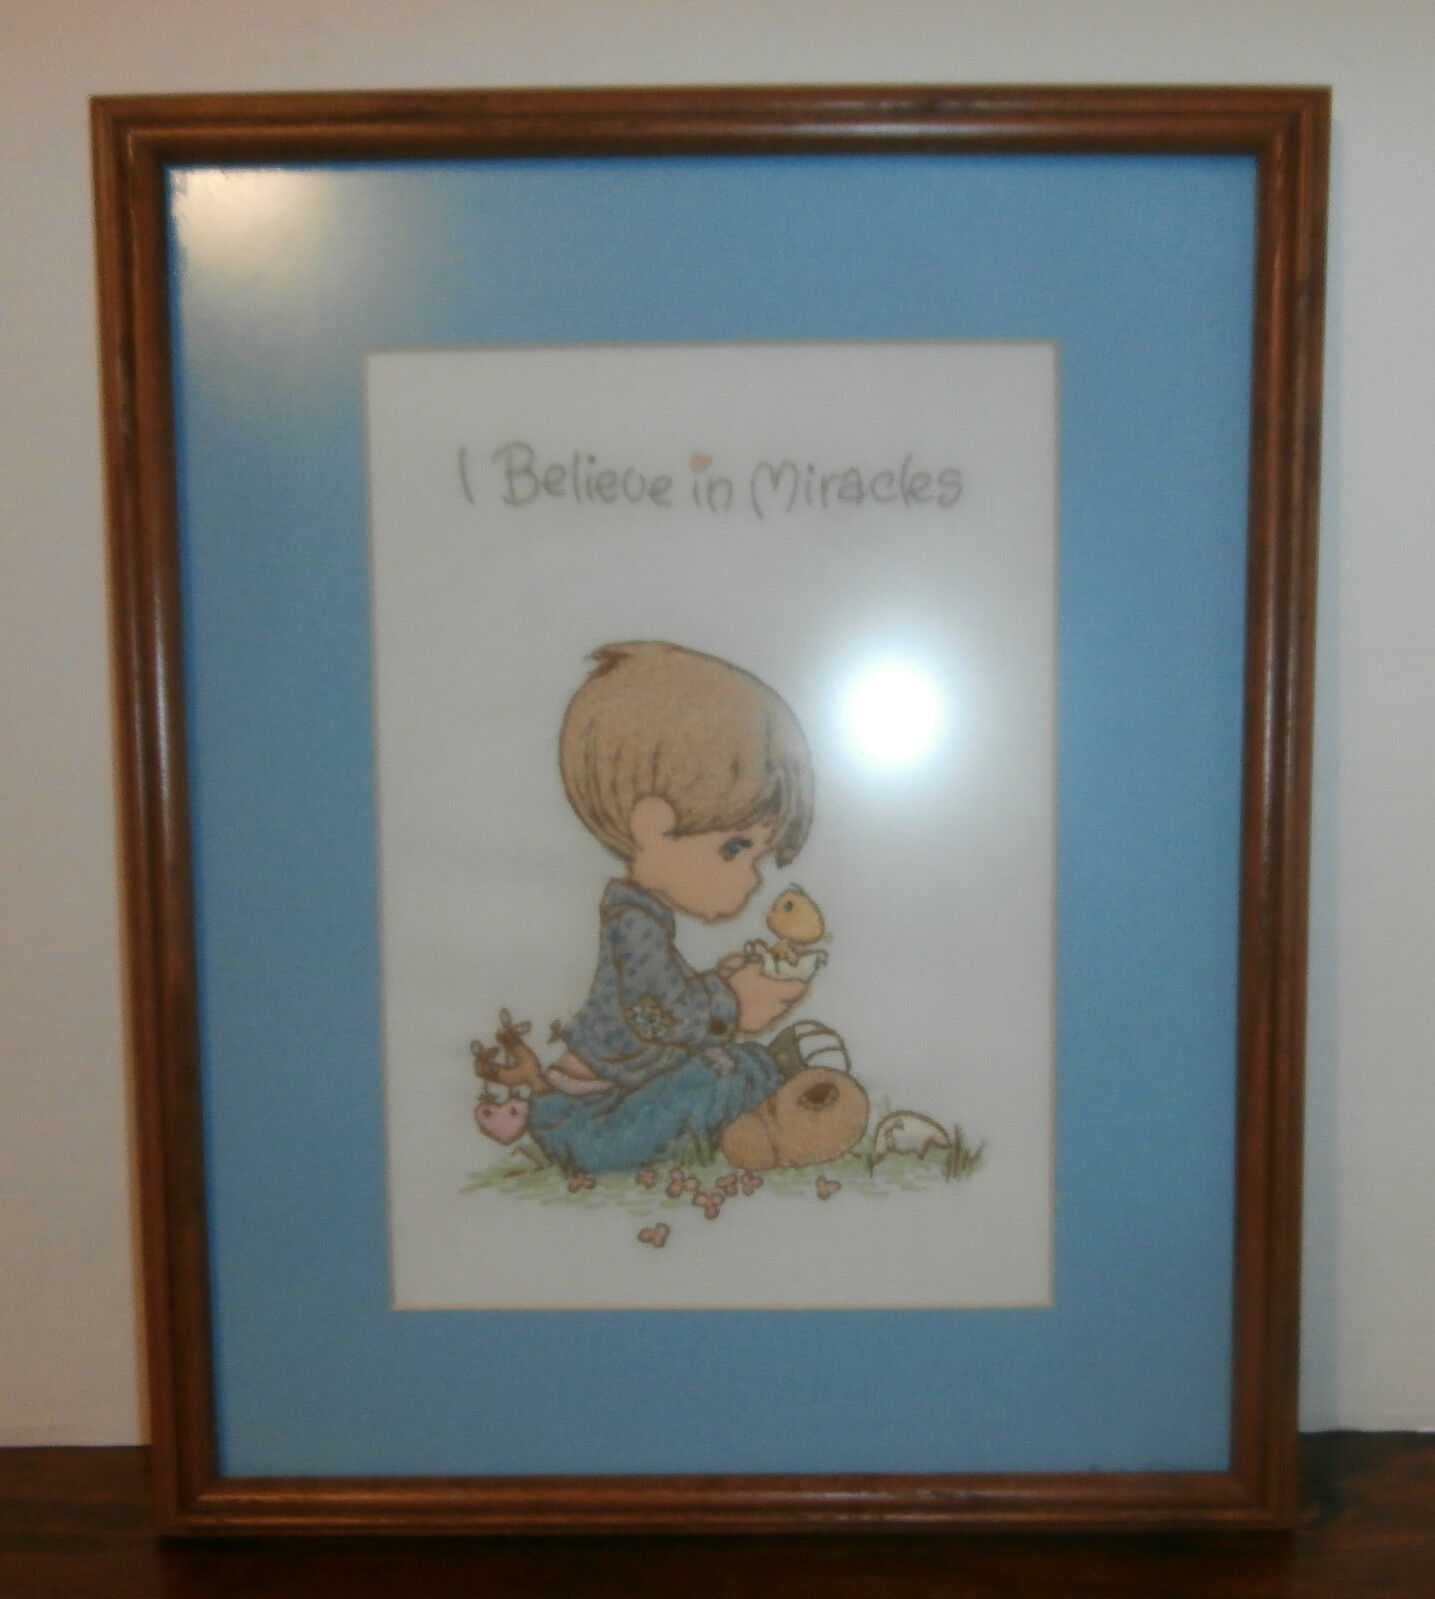 "Primary image for I Believe in Miracles Finished Framed Embroidery 12"" x 15"" Precious Moments"